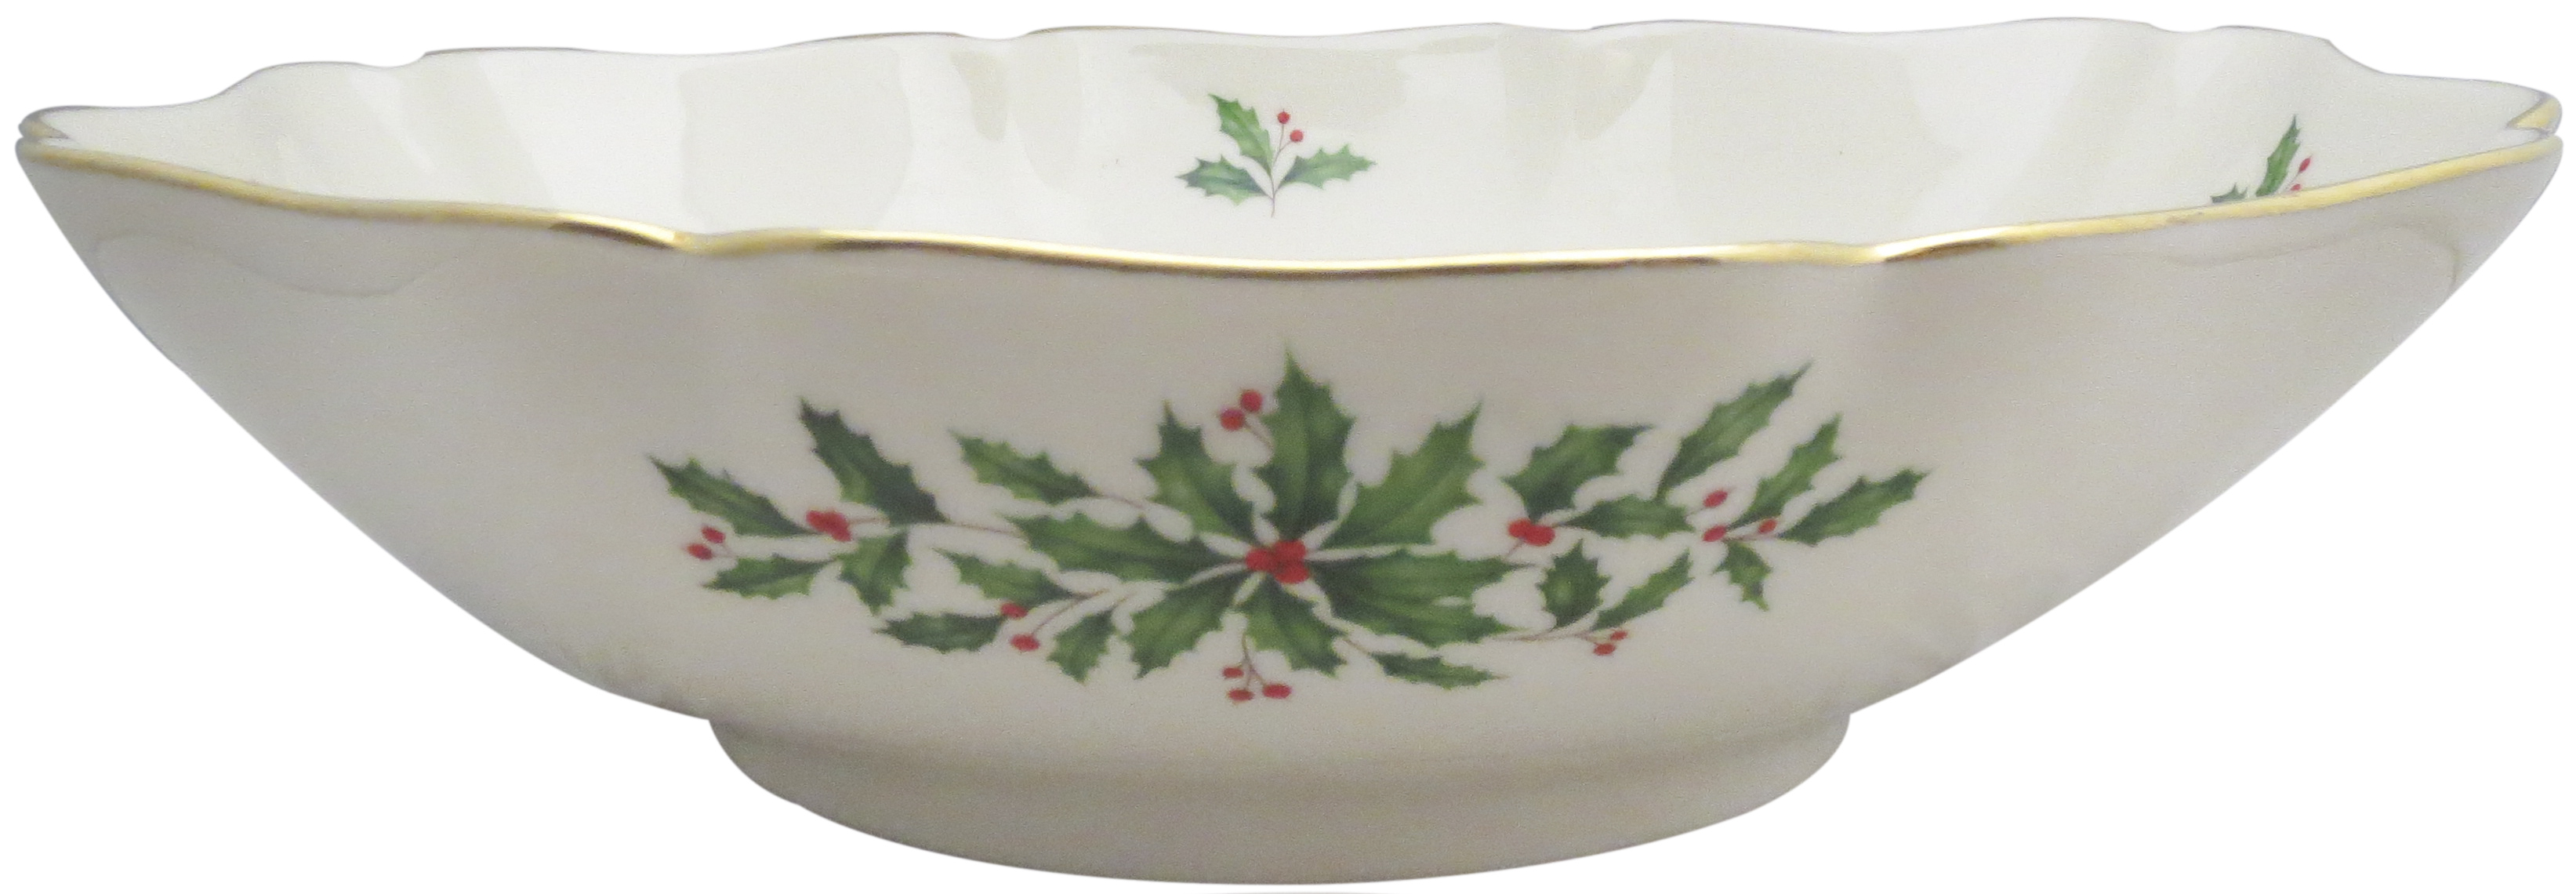 Lenox holiday dimension centerpiece